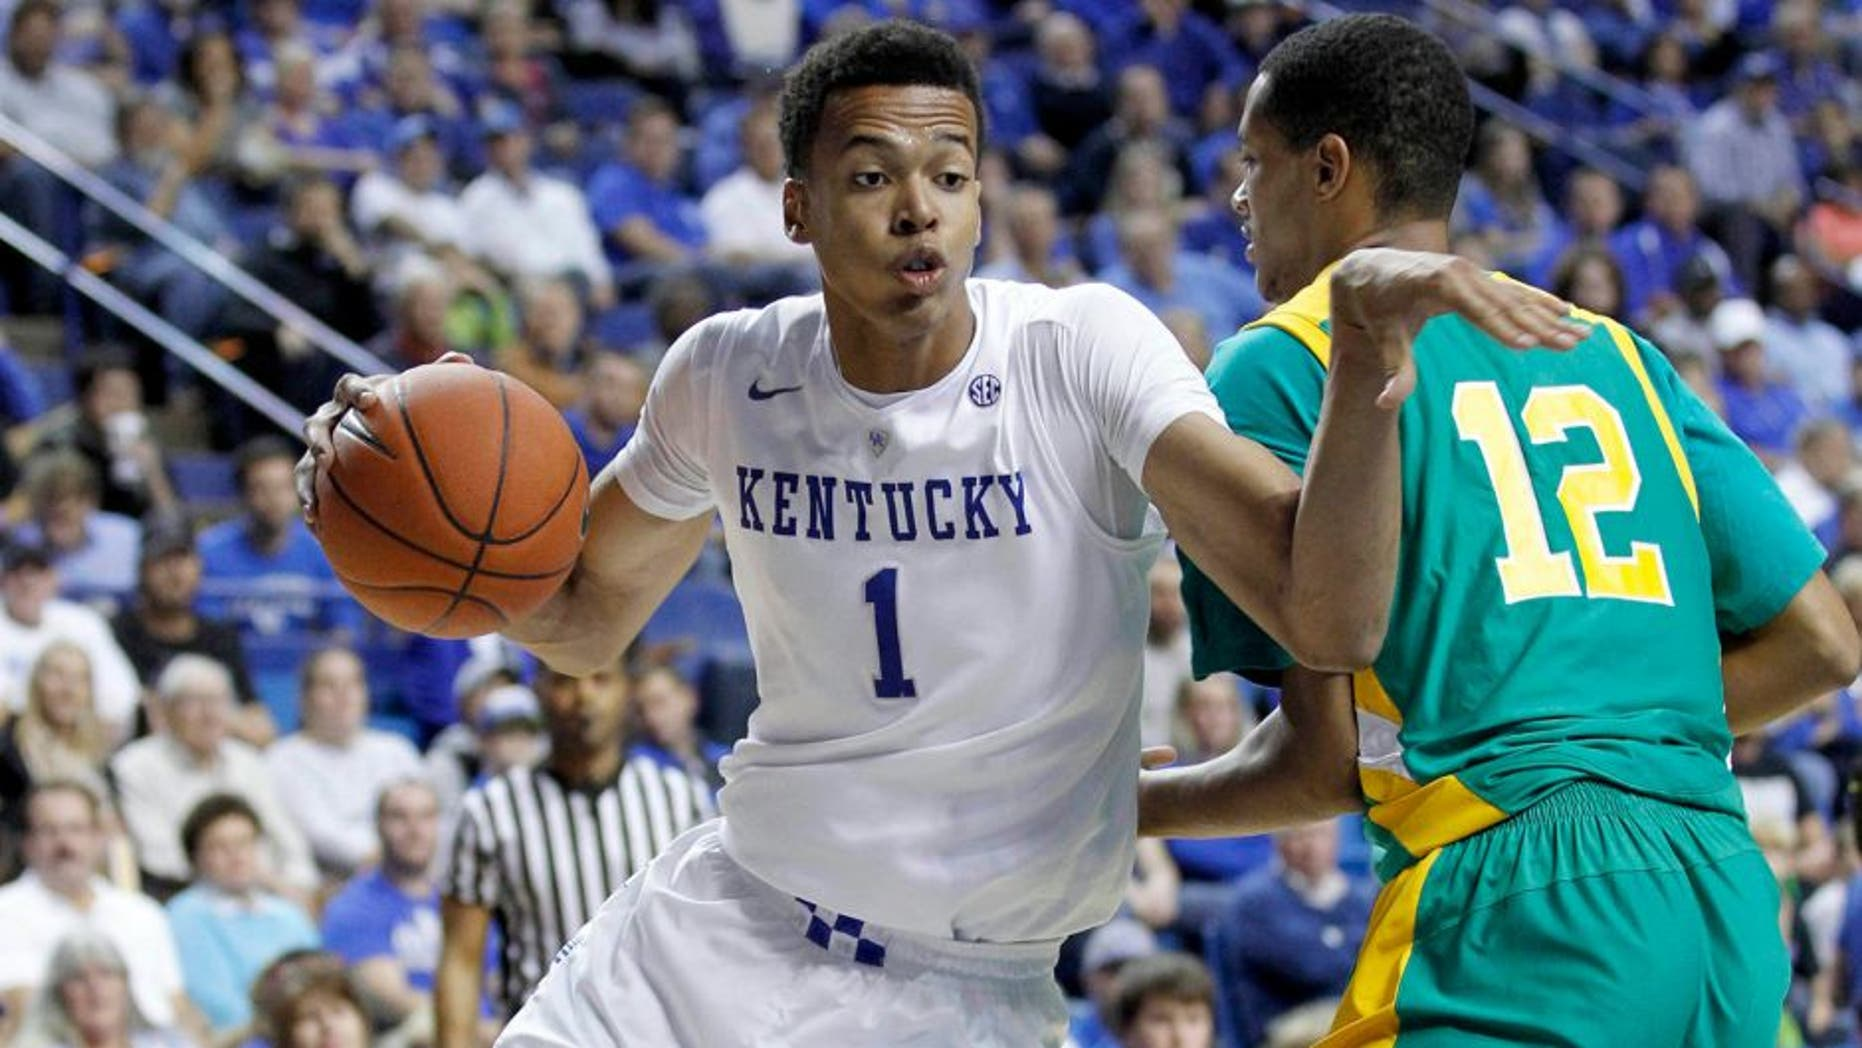 Nov 6, 2015; Lexington, KY, USA; Kentucky Wildcats forward Skal Labissiere (1) dribbles the ball against the Kentucky State Thorobreds center Julius Barton (12) in the second half at Rupp Arena. Kentucky defeated Kentucky State 111-58. Mandatory Credit: Mark Zerof-USA TODAY Sports